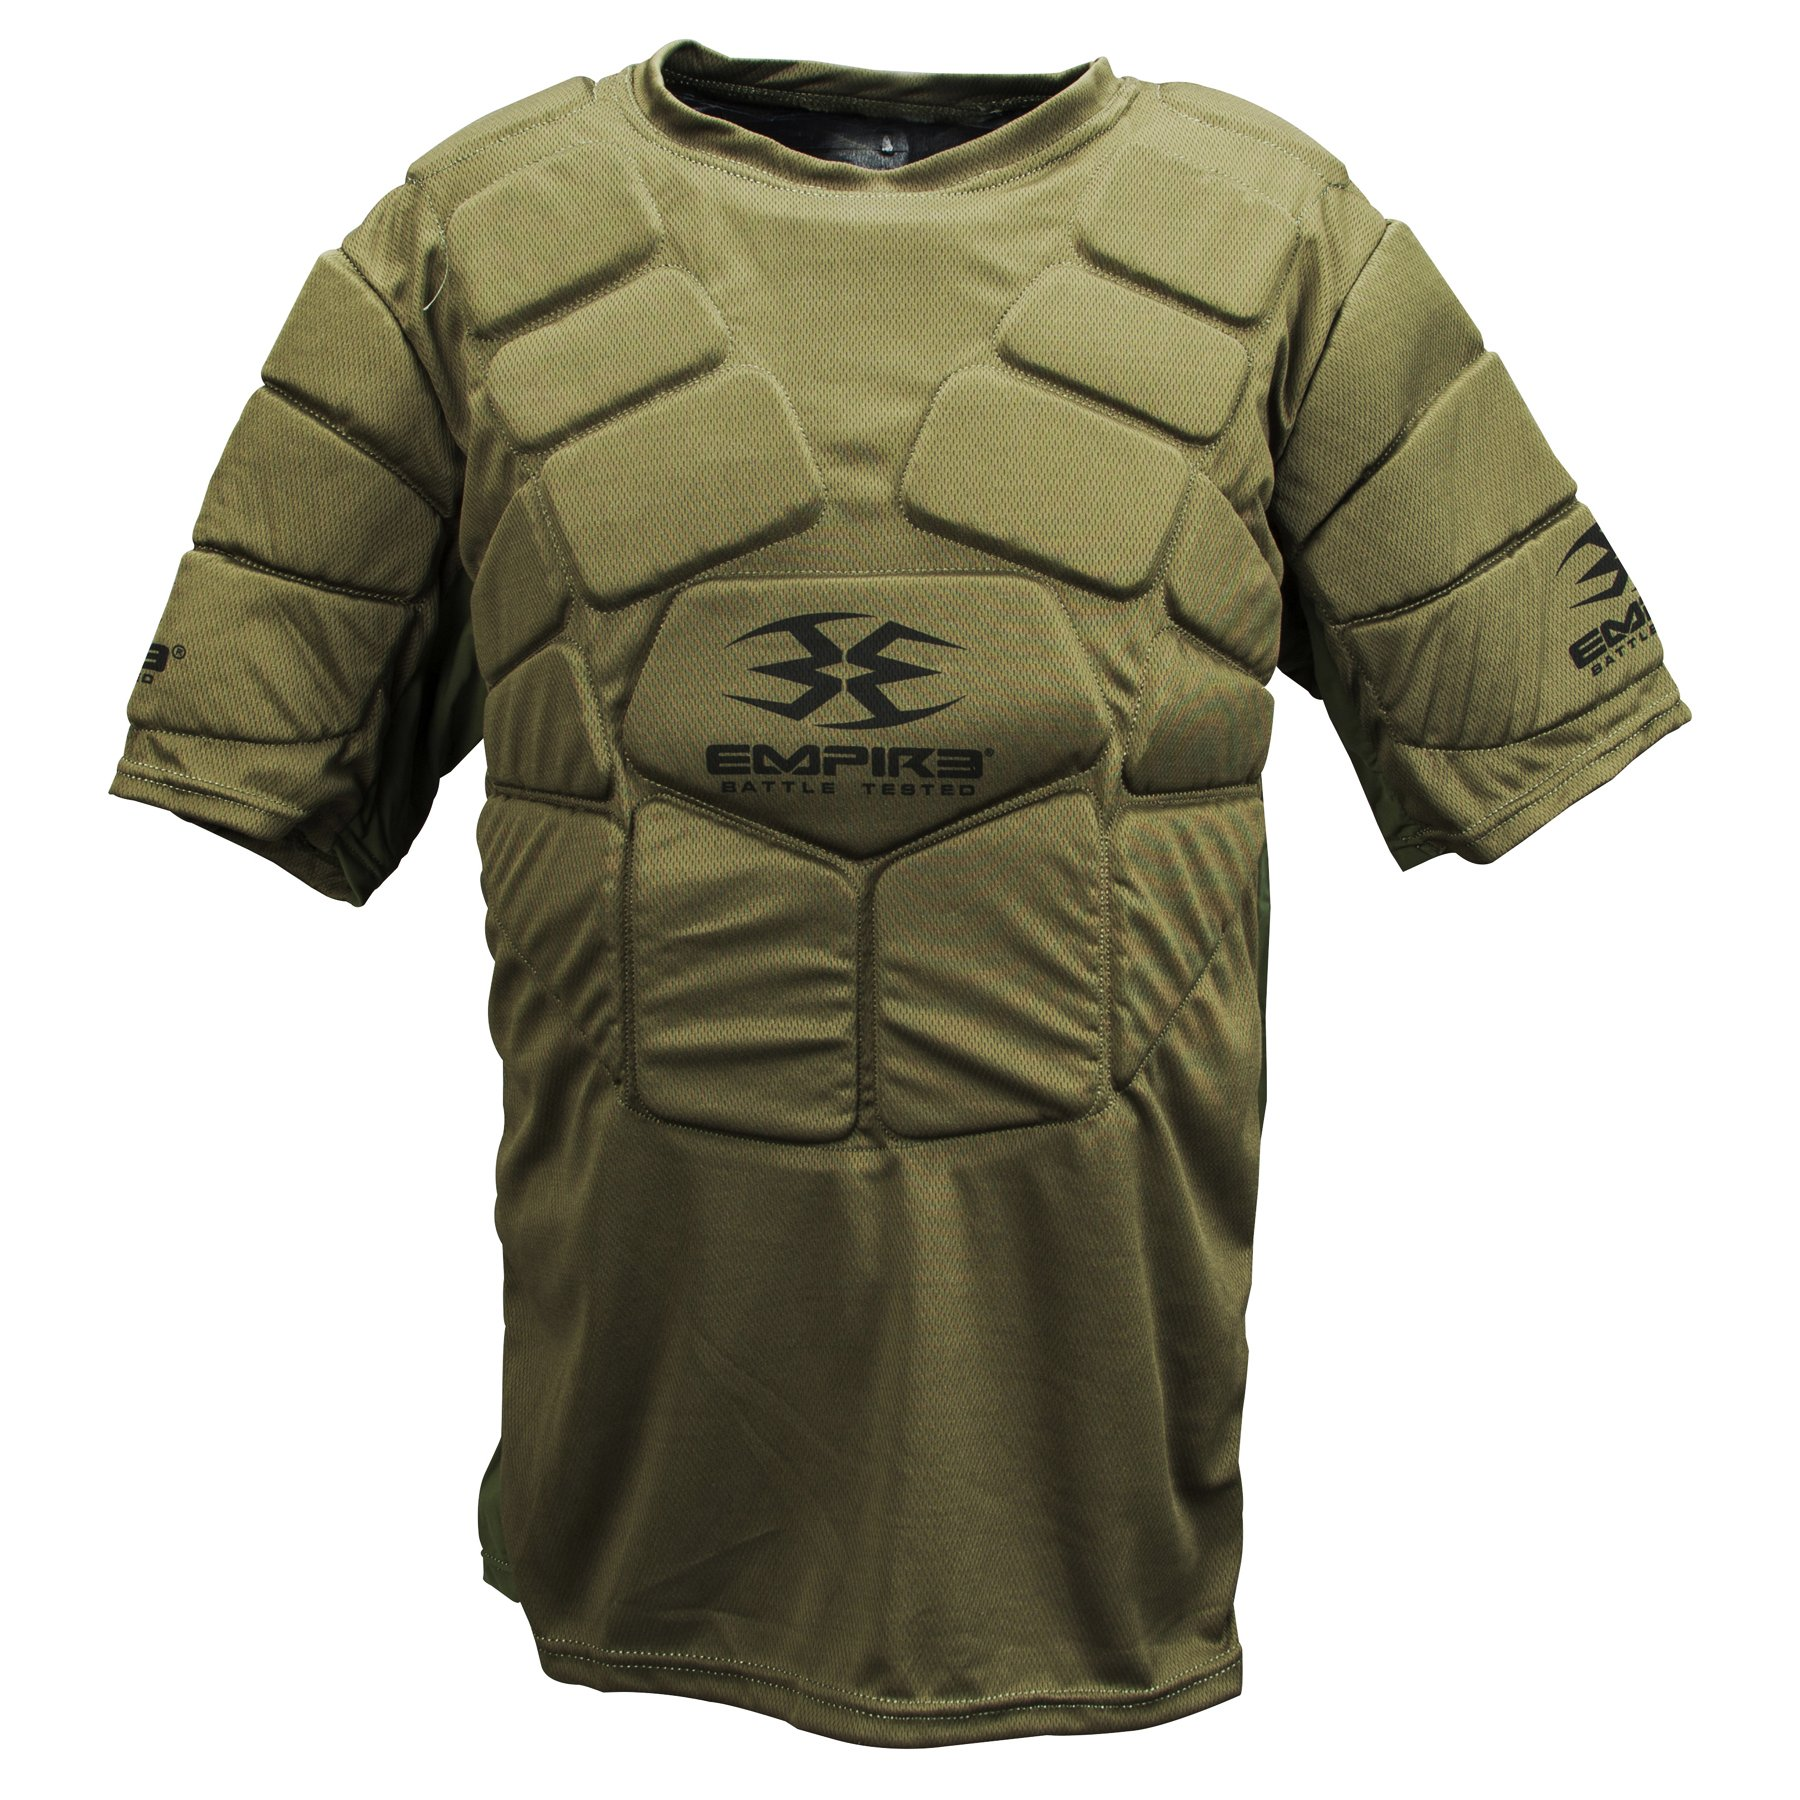 Empire Paintball BT Chest Protector, Olive, Large/X-Large by Empire Paintball